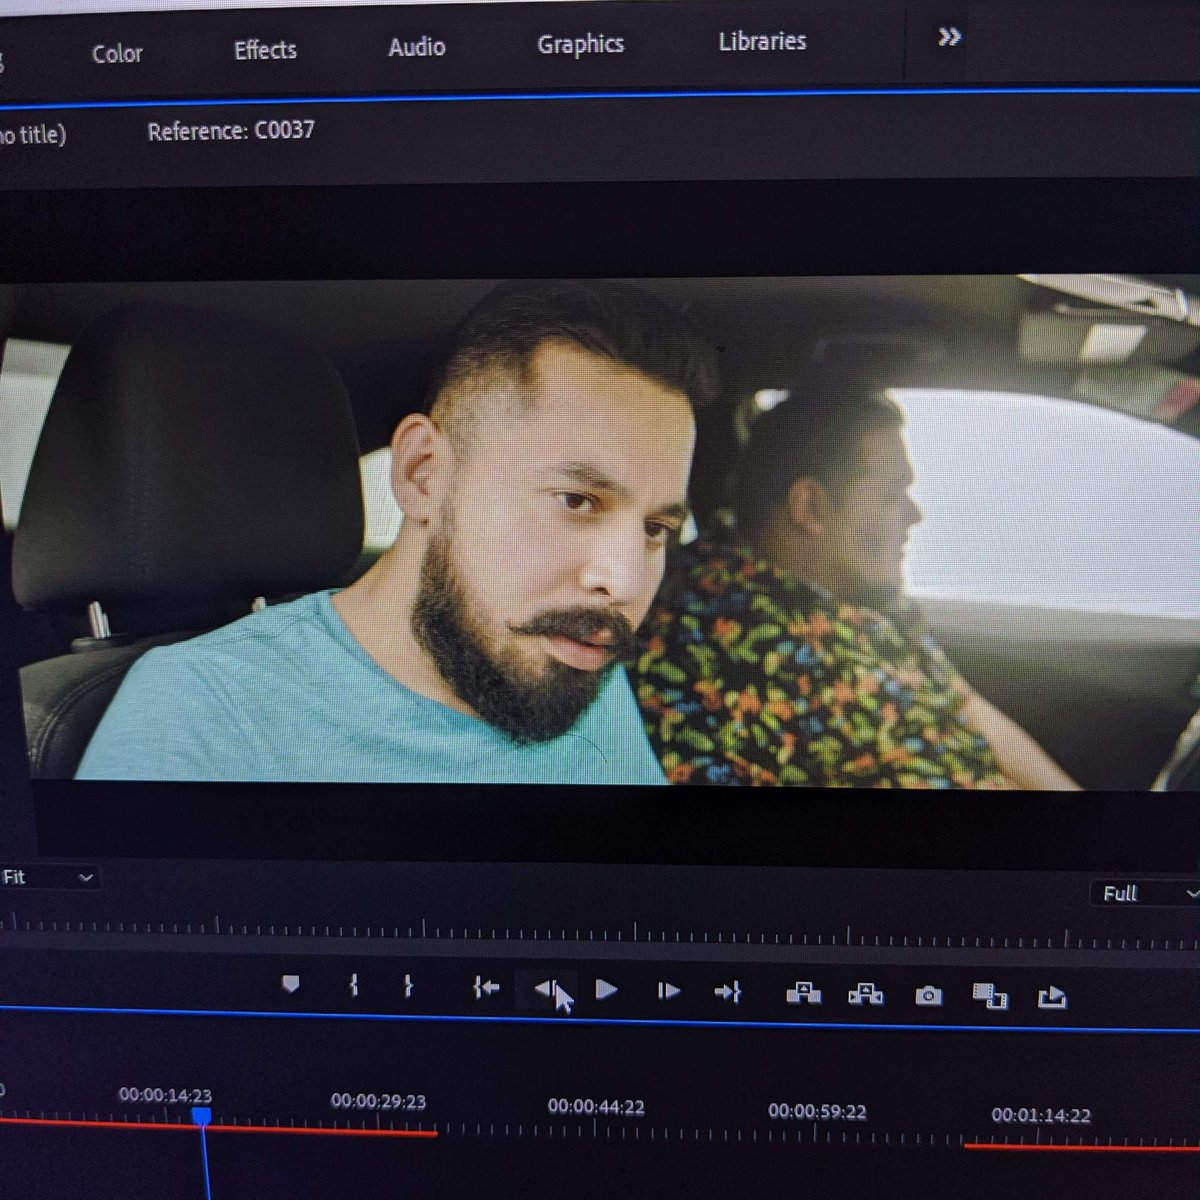 Someone tell me what I'm looking at here......wrong answers only!!! #films #filming #actor #actorslife #acting #filmfestivals #bigscreen #mustache #beard #directing #editingpic.twitter.com/cyNAaRkvhA